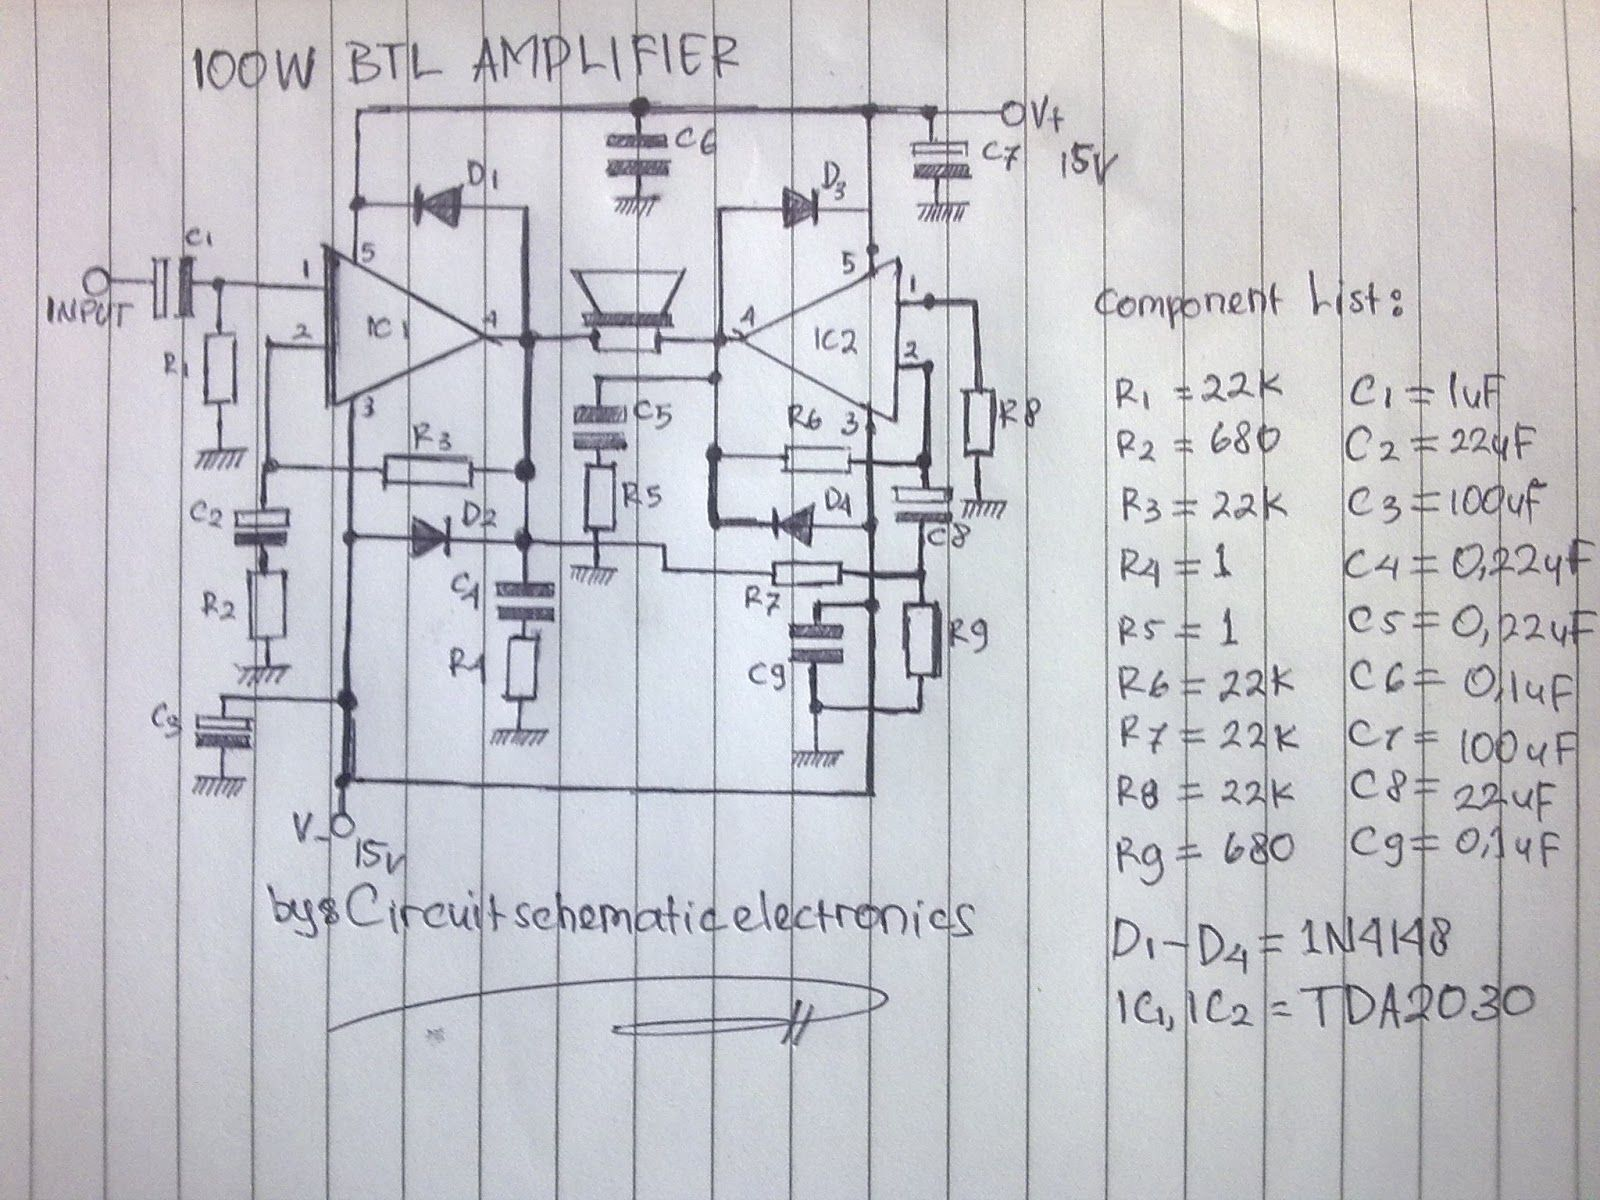 100w btl tda2030 amplifier circuit in 2019 download audio100w btl tda2030 amplifier circuit